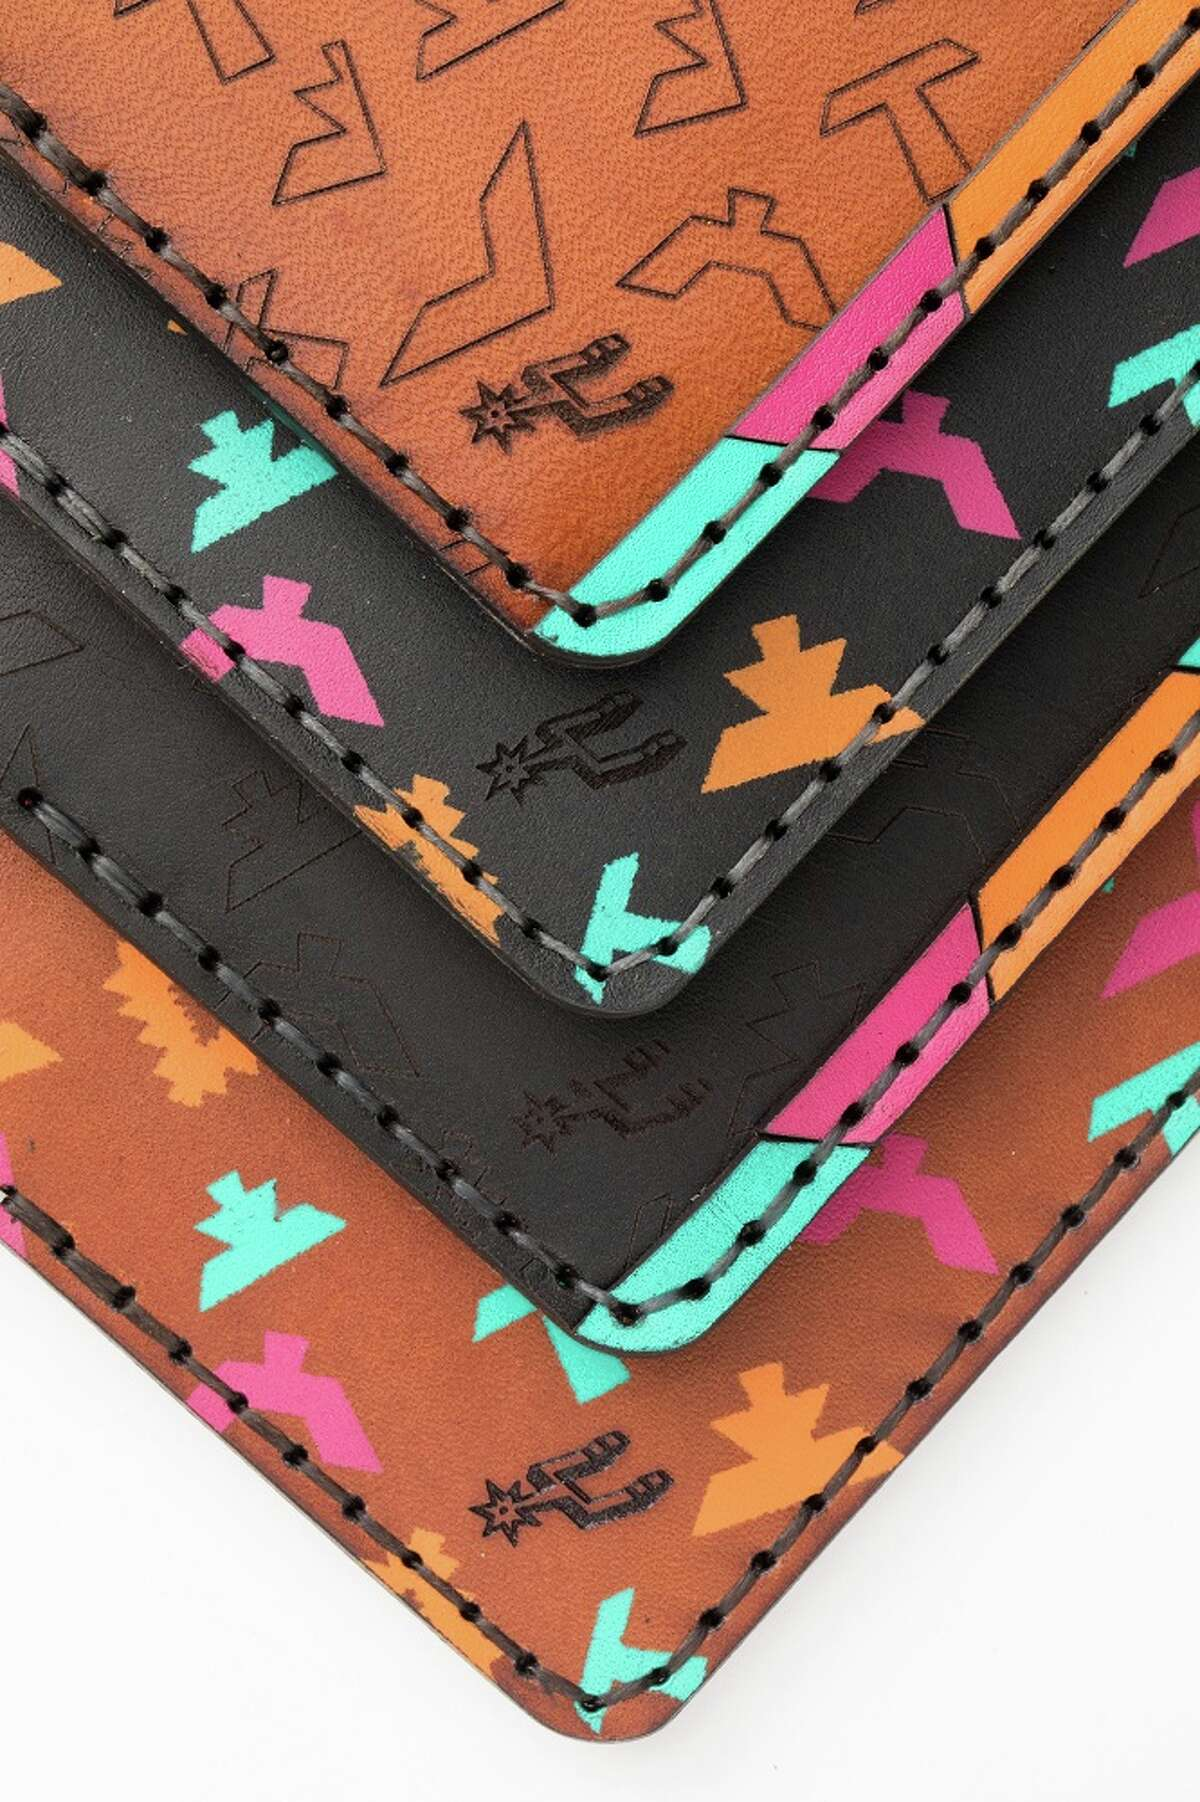 The third project between the Spurs and the San Antonio-based leather goods company is inspired by this season's City Edition jerseys. Turquoise, fuschia and orange, otherwise known as the city's signature